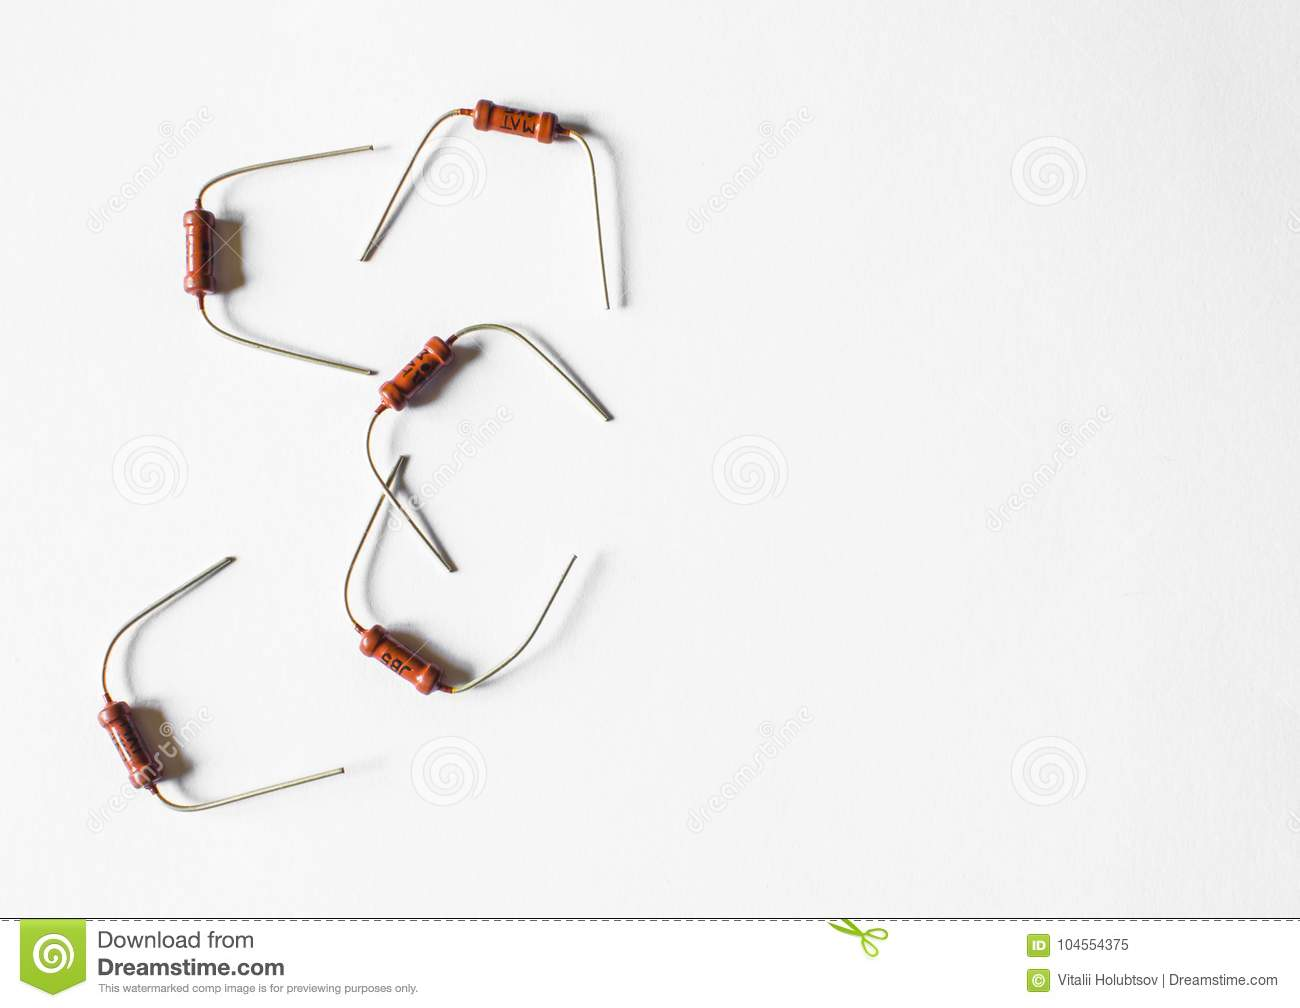 Resistor Passive Two Terminal Electrical Component For Current Flow In A Circuit Resistance To Reduce And Lower Voltage